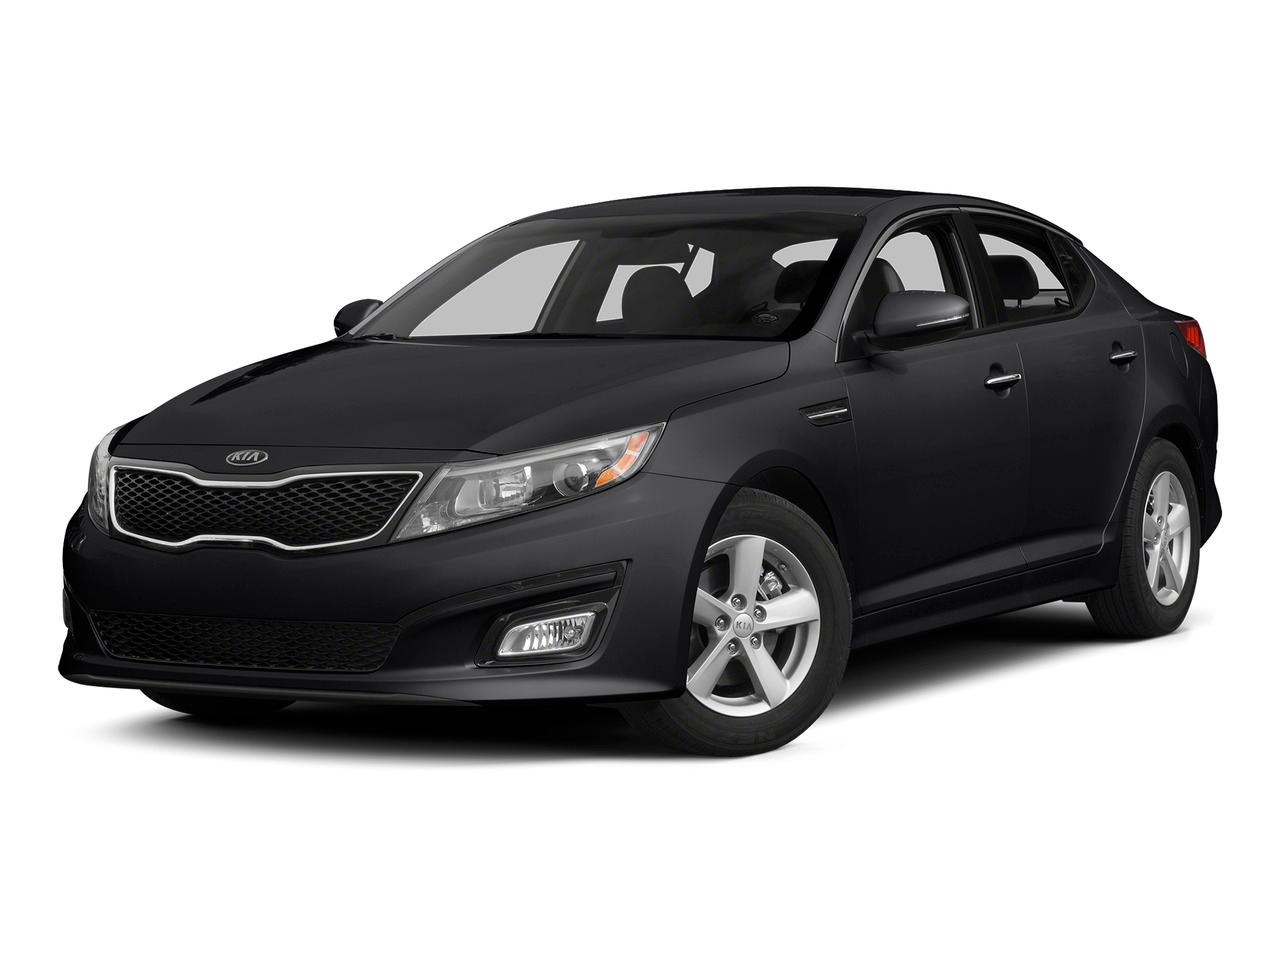 2015 Kia Optima Vehicle Photo in Medina, OH 44256